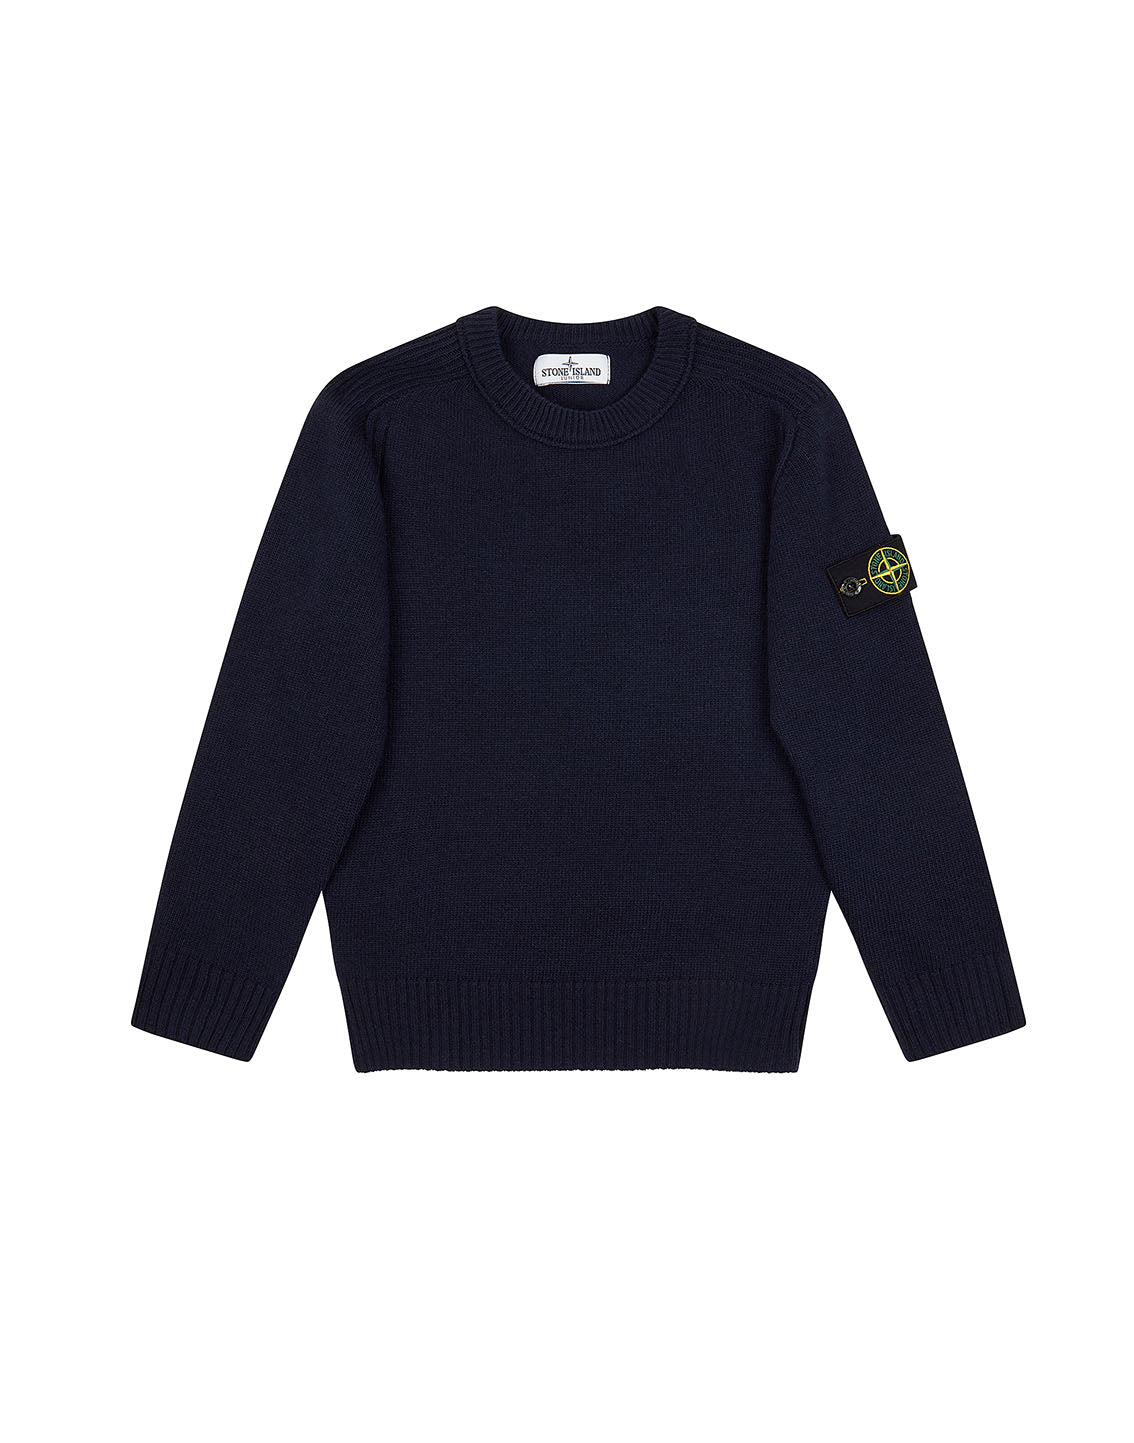 506A1 Crewneck Knit in Navy Blue